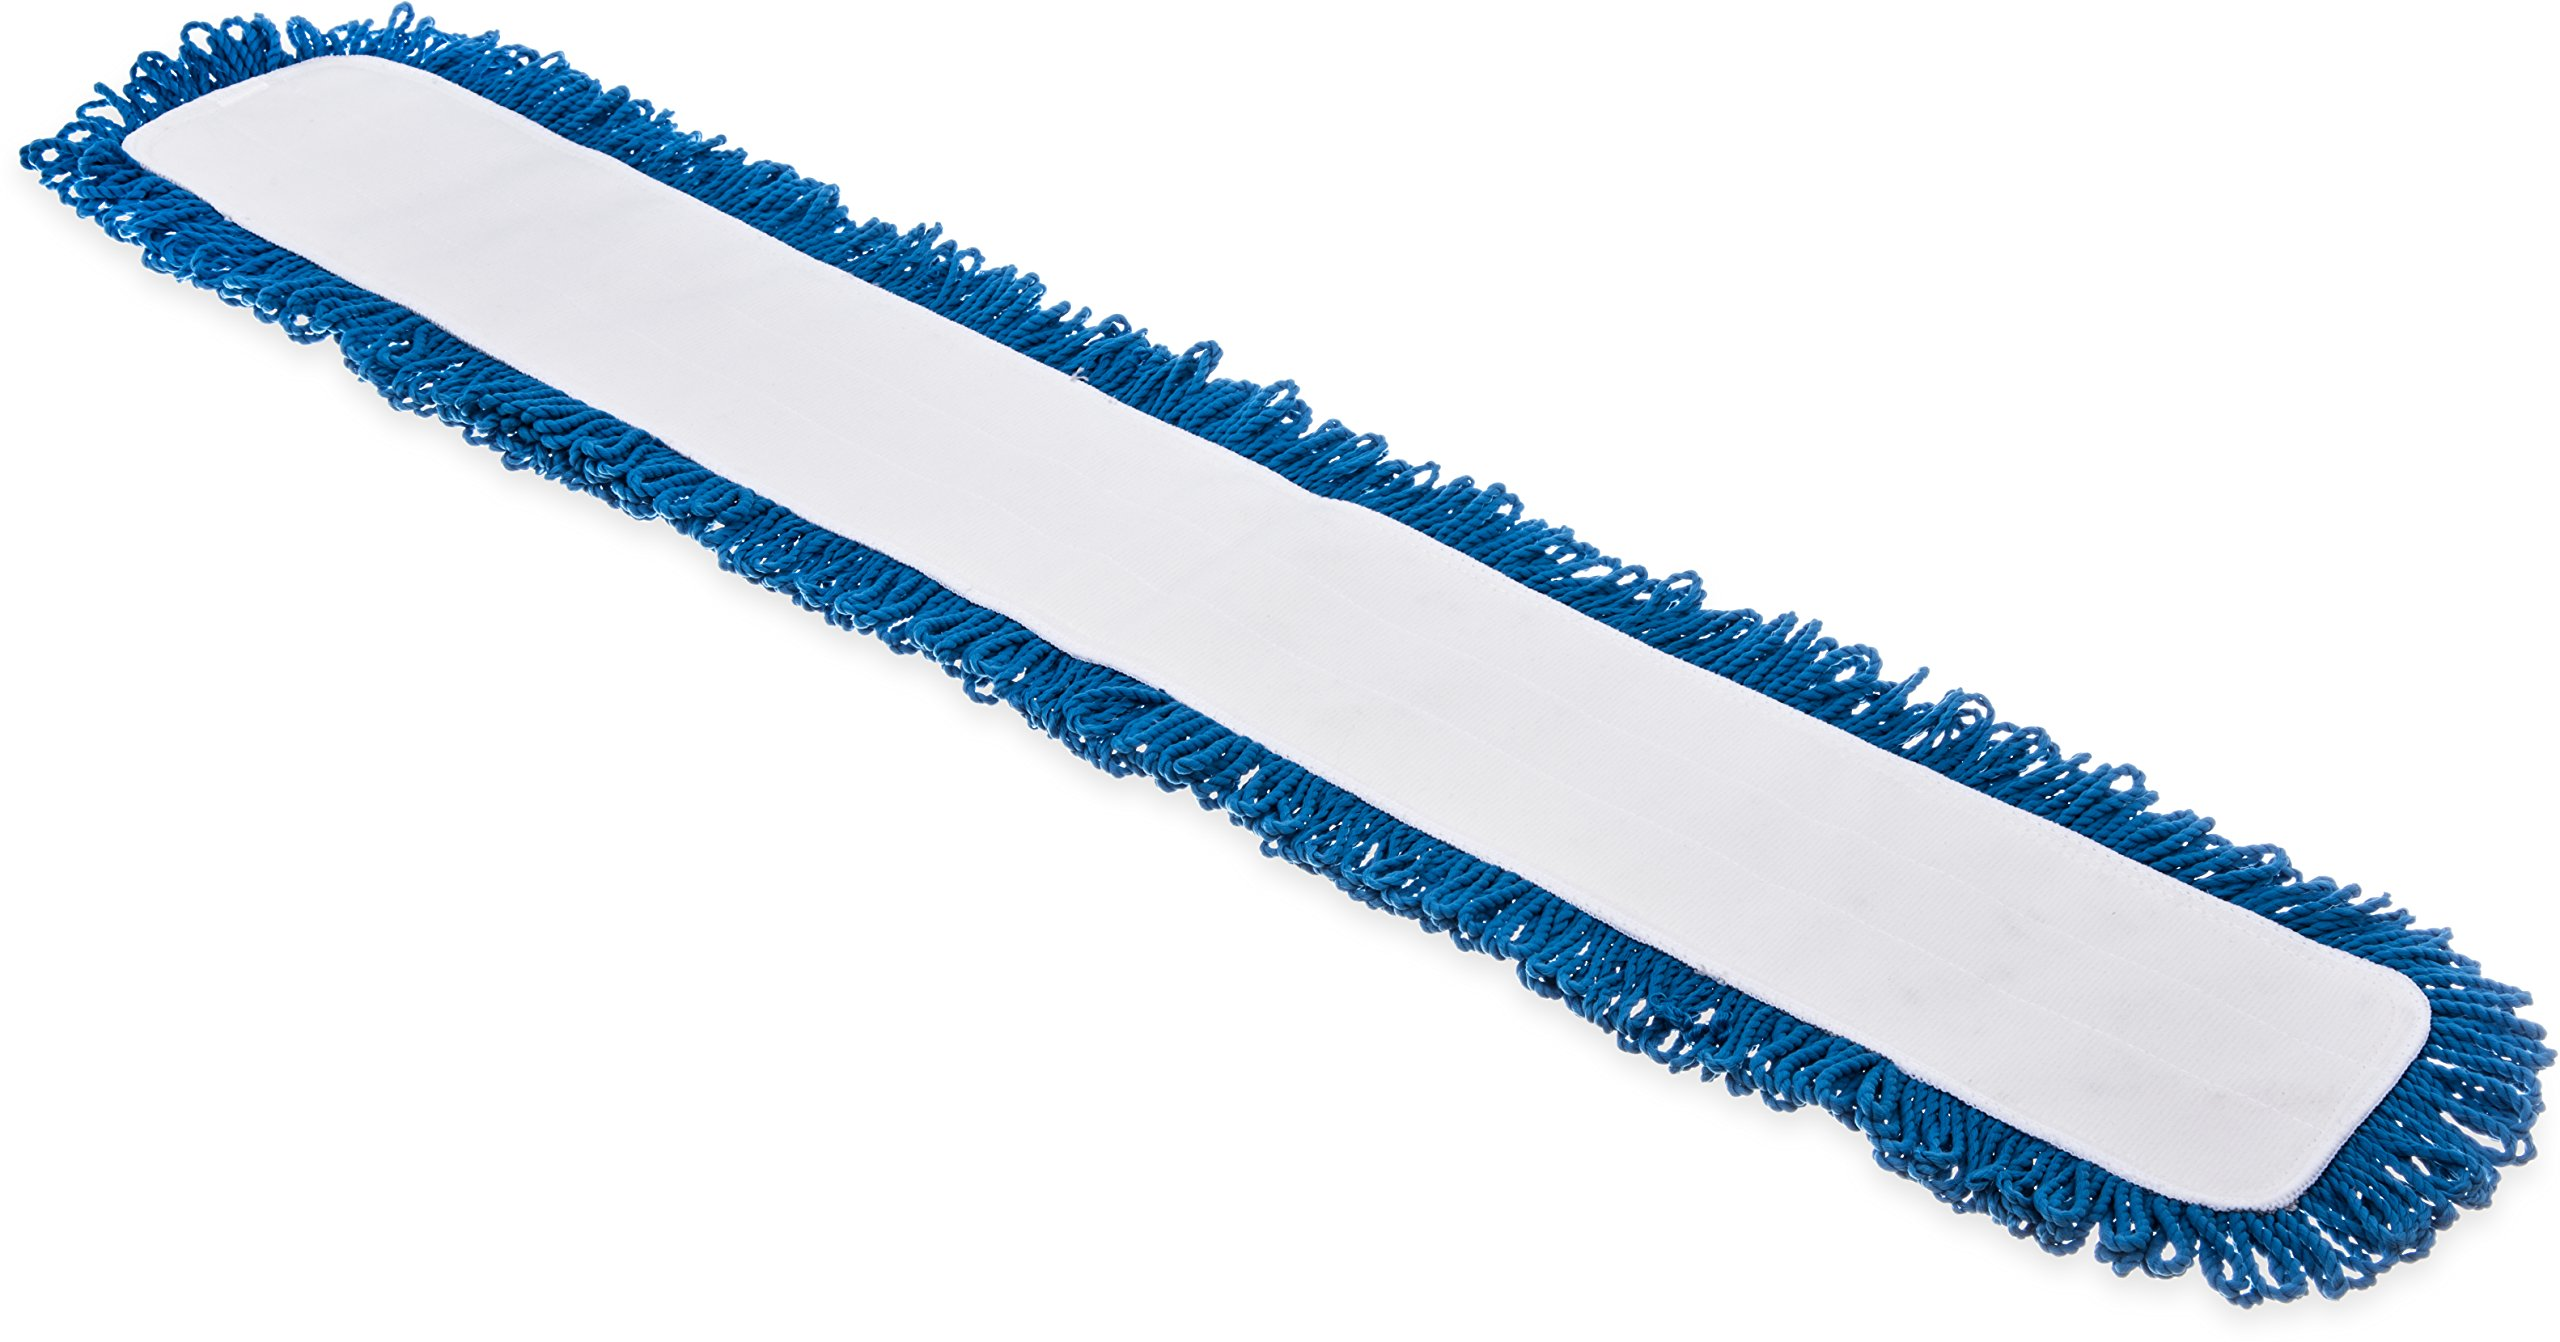 Carlisle 363313614 Polyester/Polyimide Blend Dry Mop Pad, 36'' Length, Blue (Pack of 12) by Carlisle